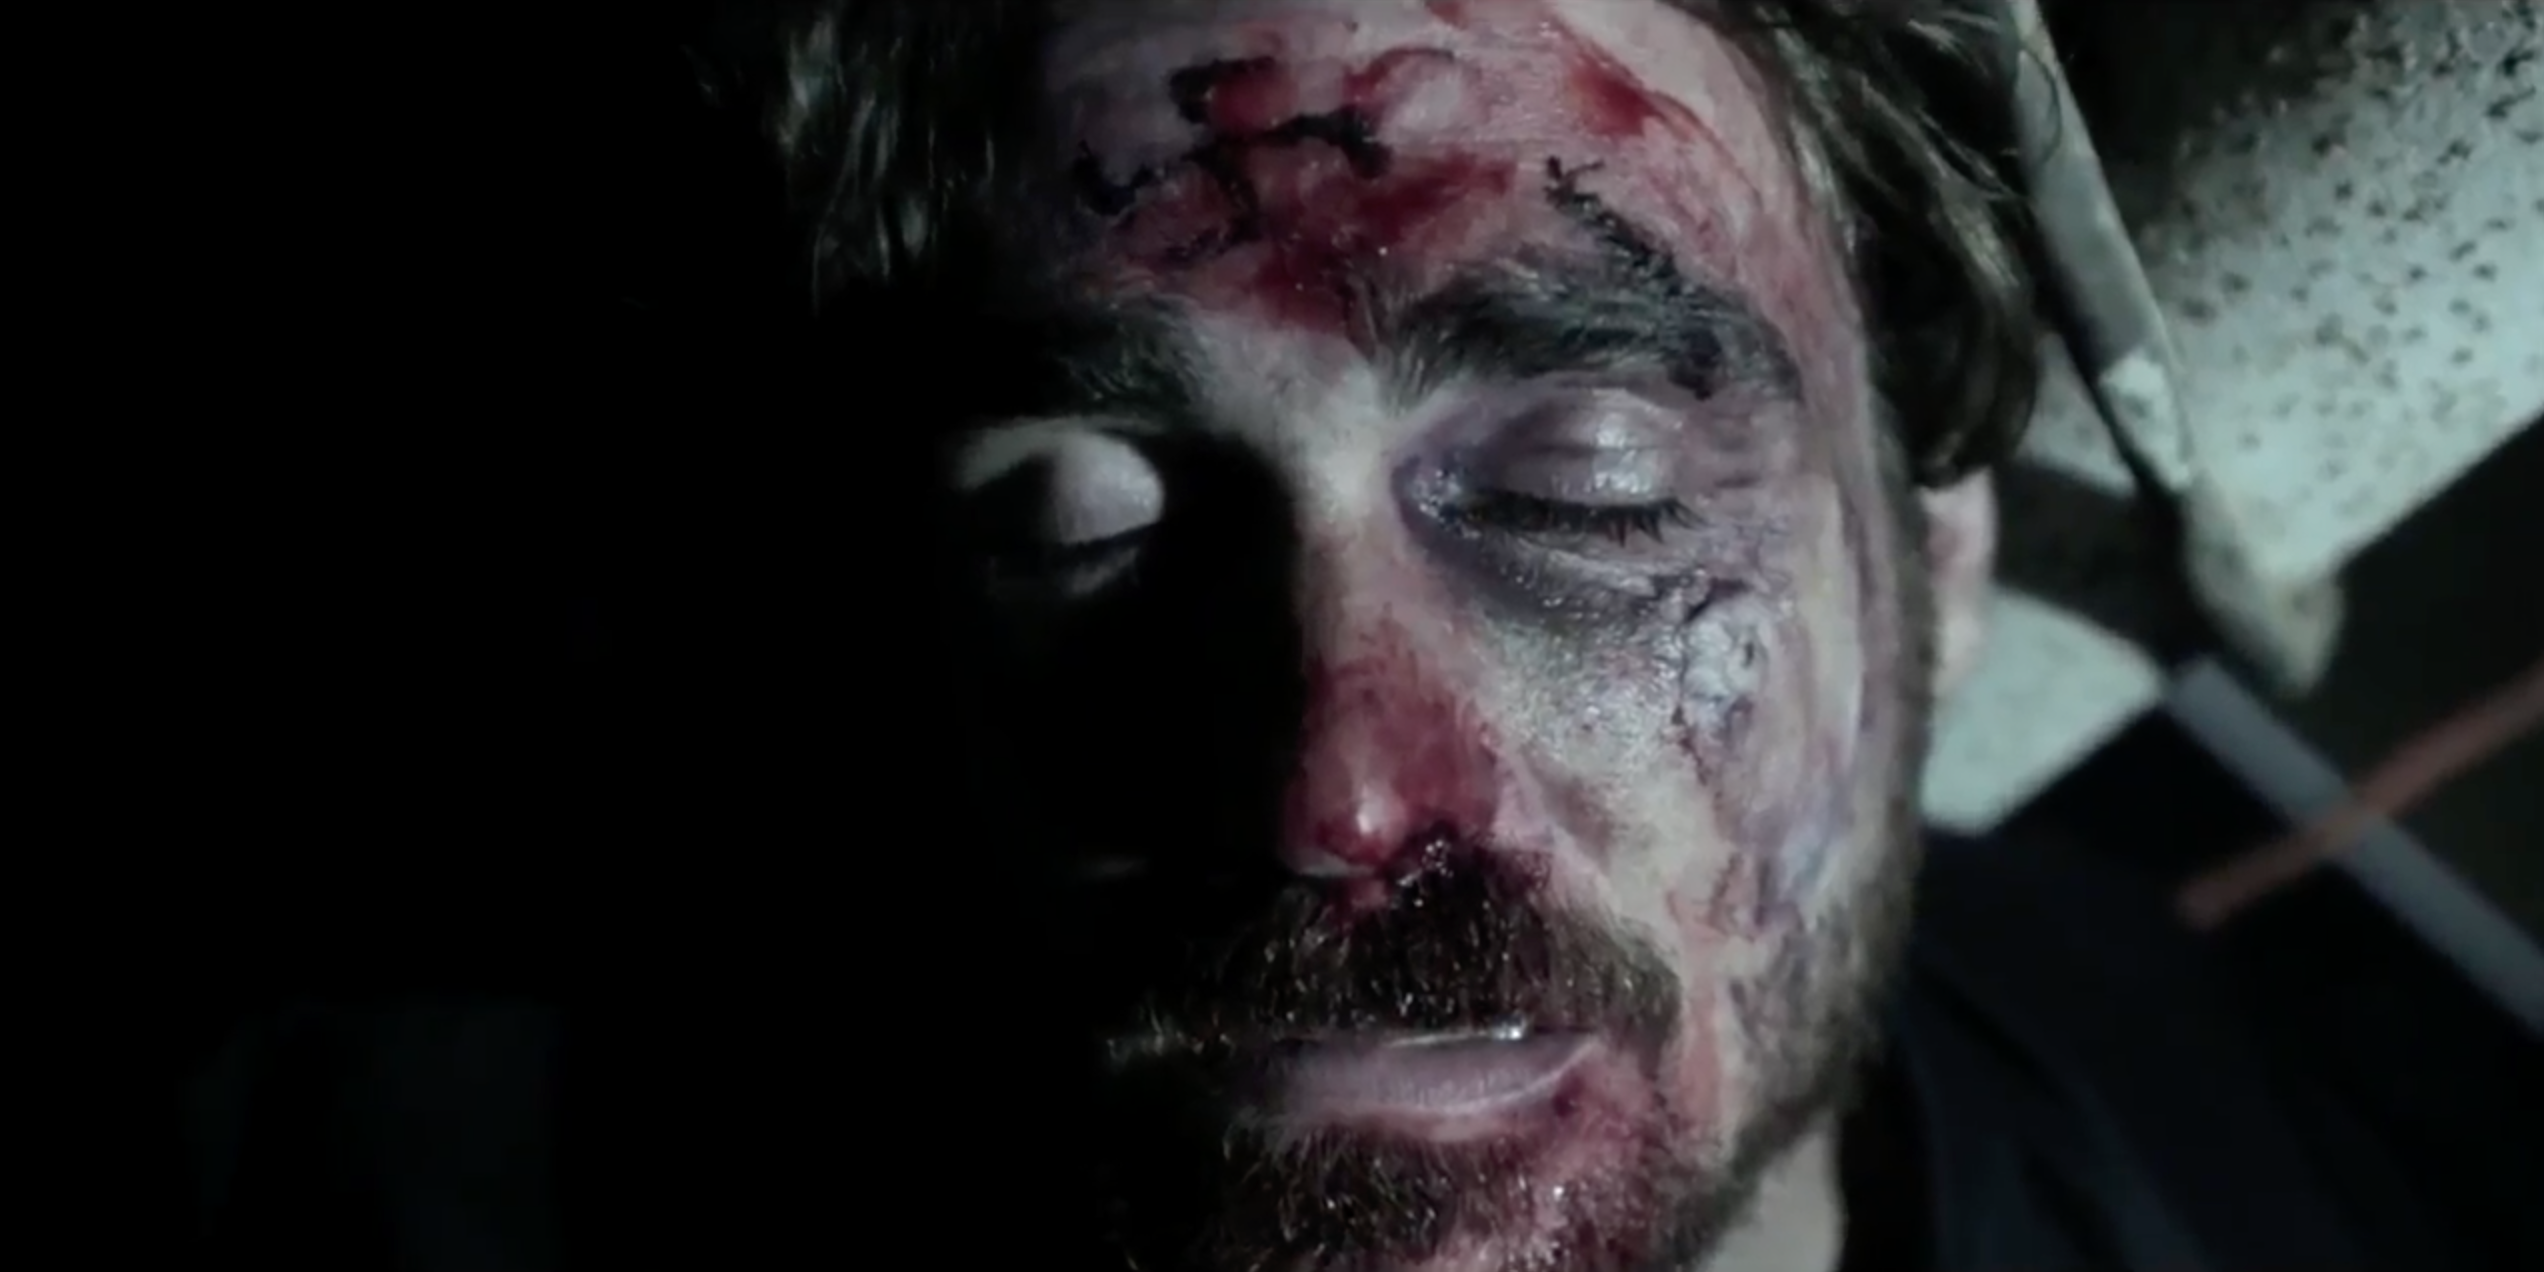 The music video shows anti-fascist activists tattooing a swastika onto a neo-Nazi's forehead.